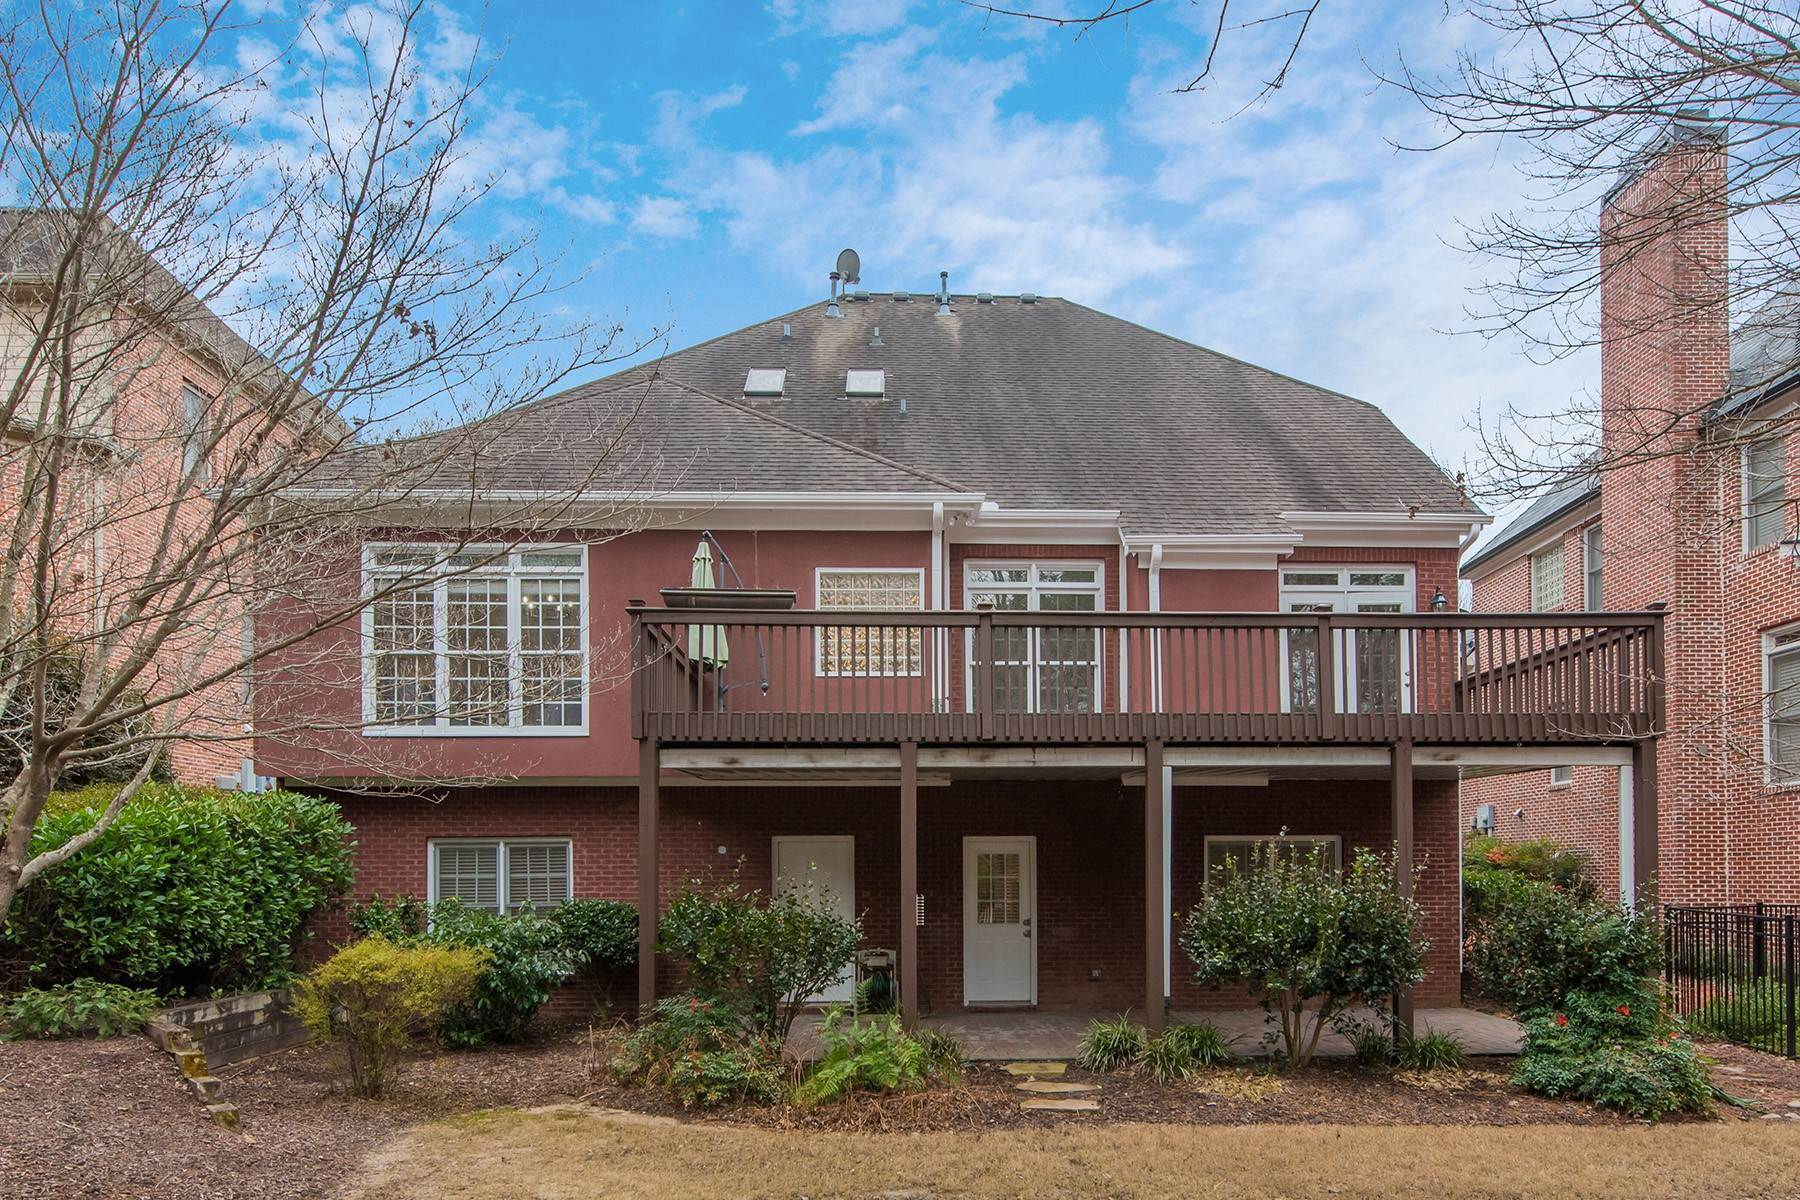 49. Single Family Homes for Sale at Brookhaven Culdesac Gem on the Park 994 Nottingham Lane NE Brookhaven, Georgia 30319 United States